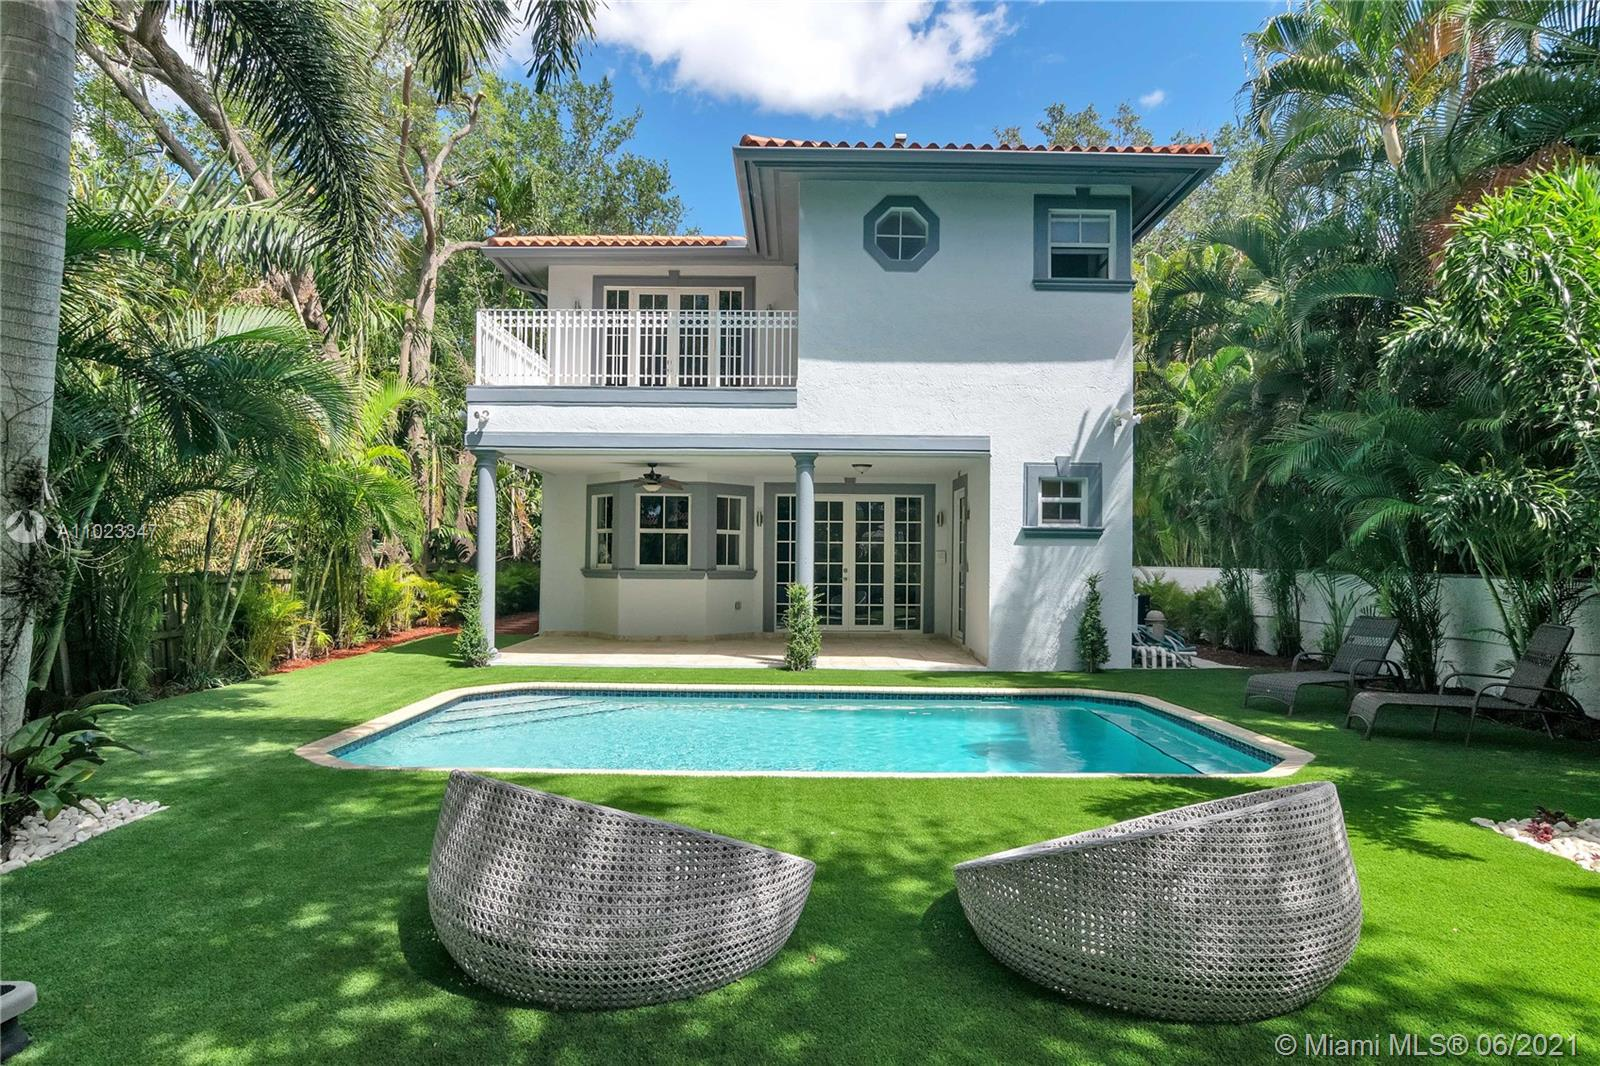 530 96th St, Miami Shores, Florida 33138